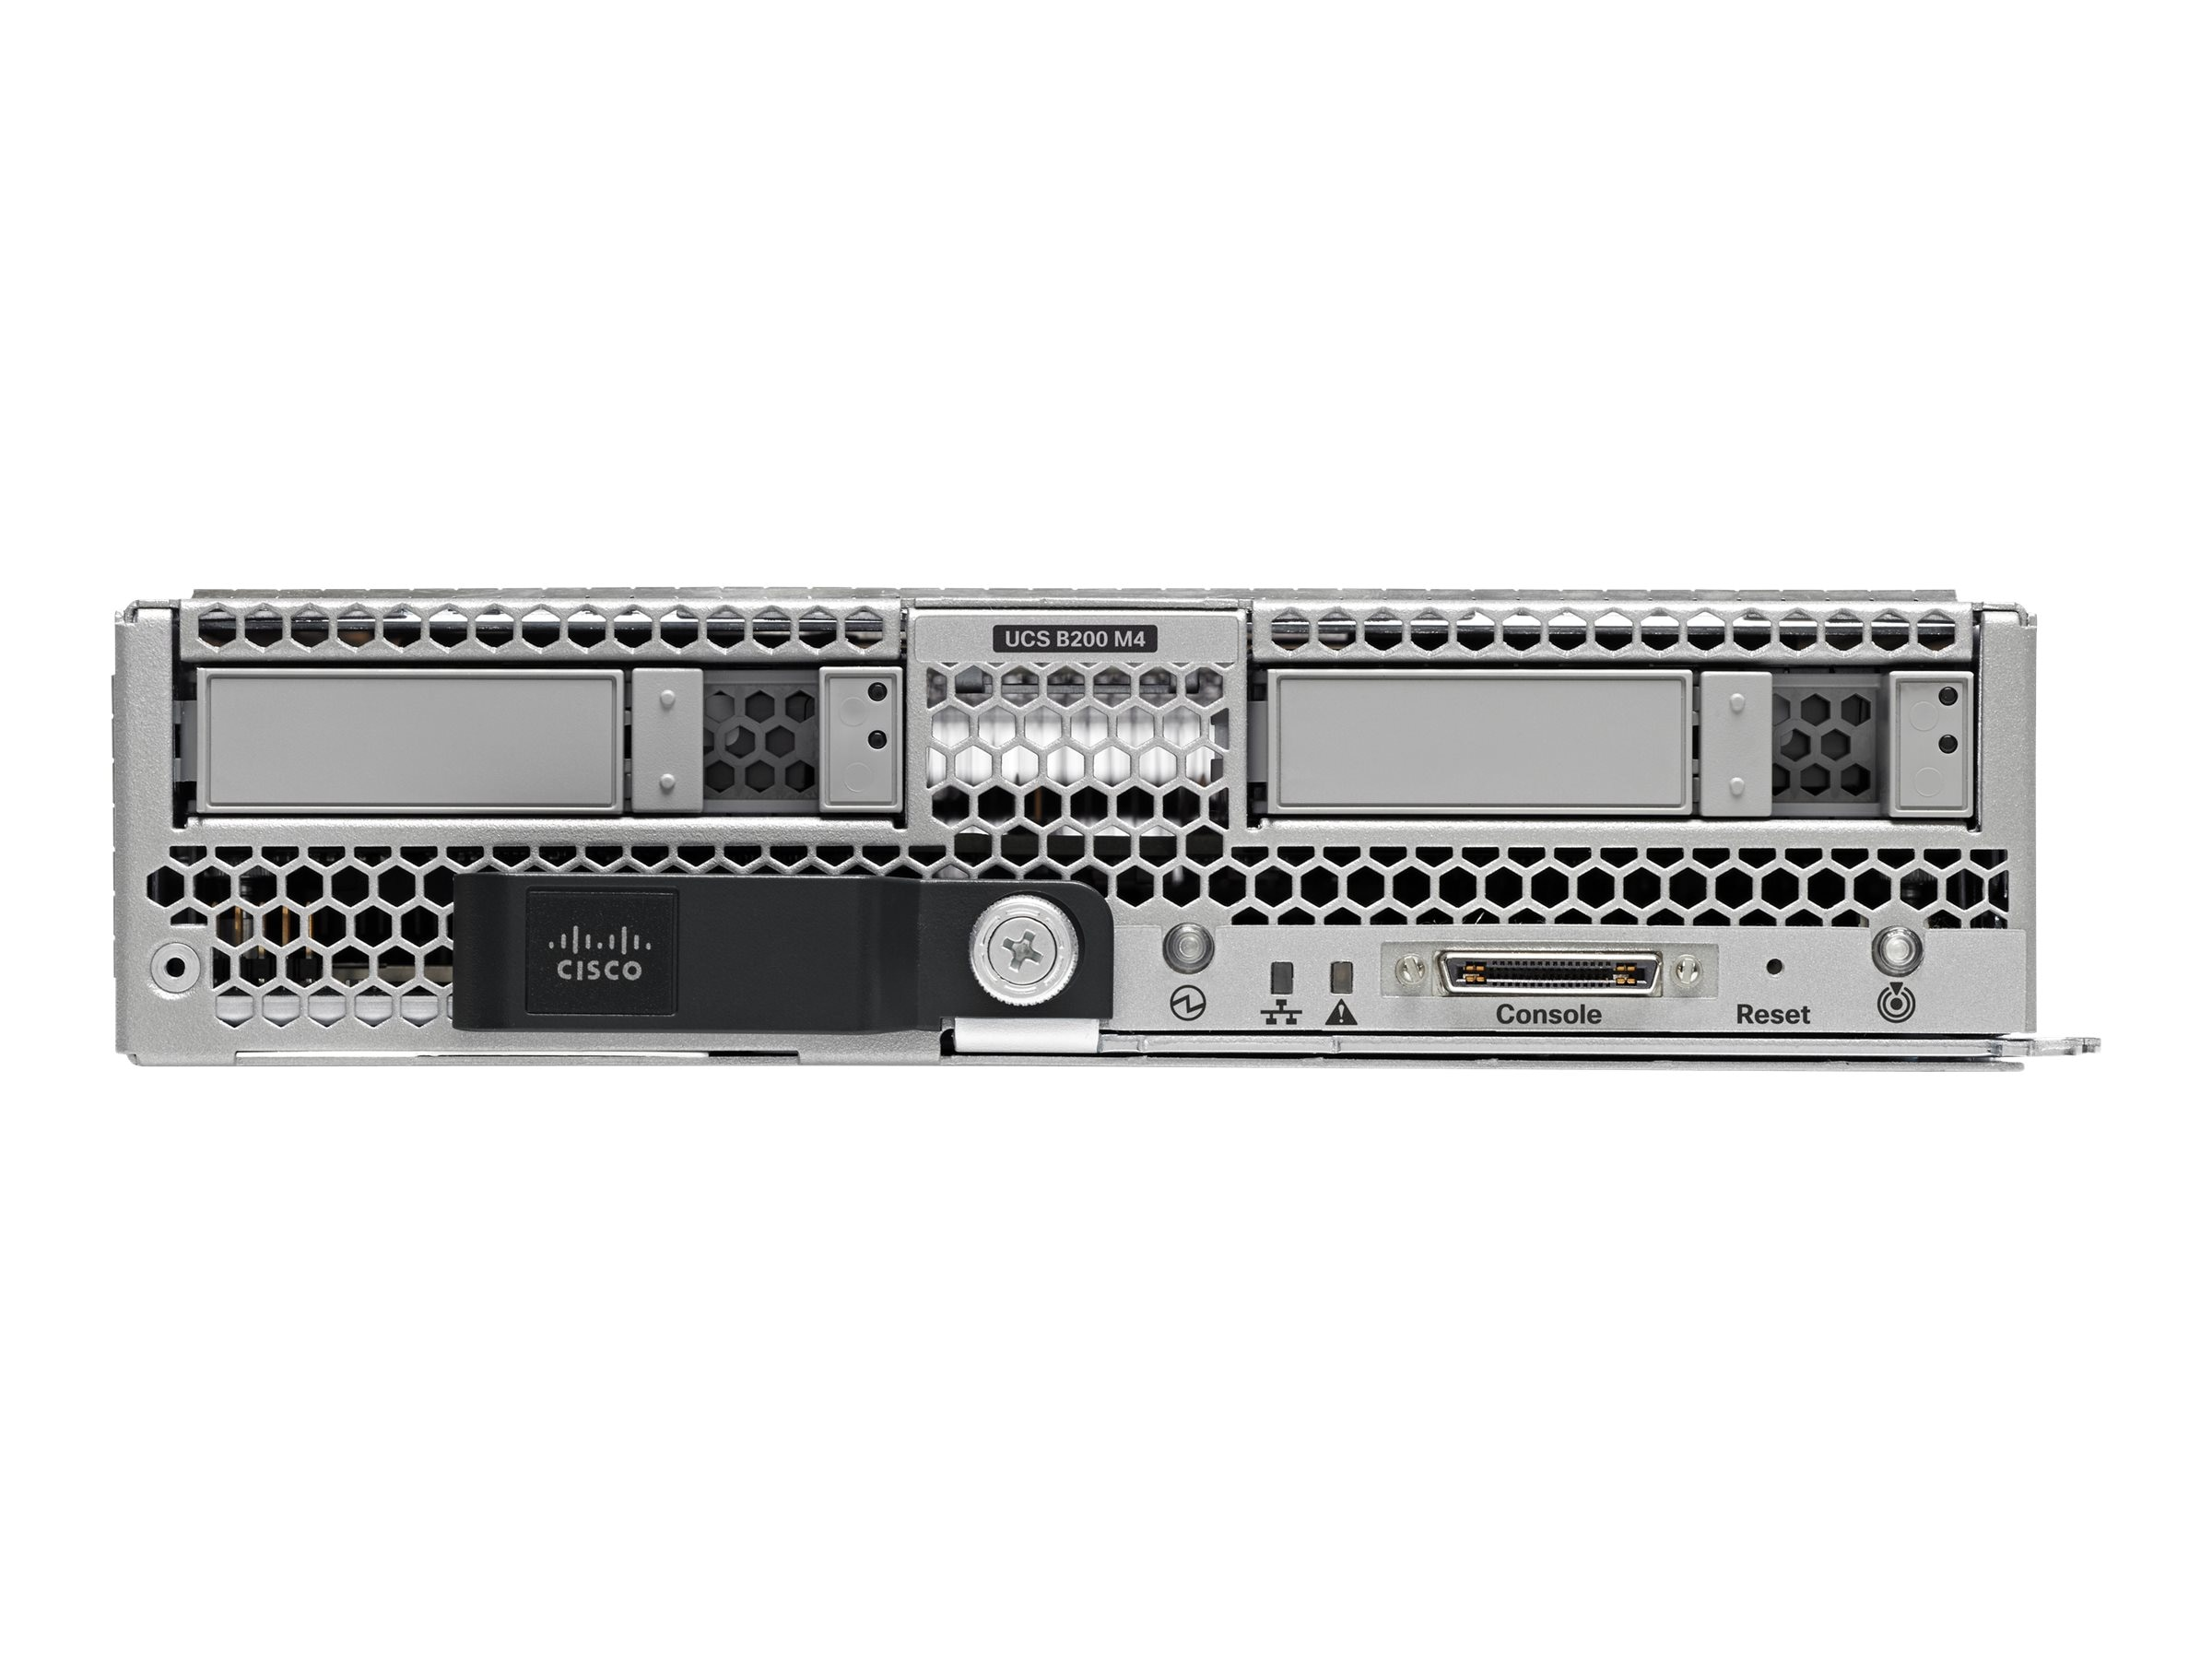 Cisco UCS SP8 B200 M4 Performance Plus with (2x)Xeon E5-2698 v3, UCS-EZ8-B200M4-PP